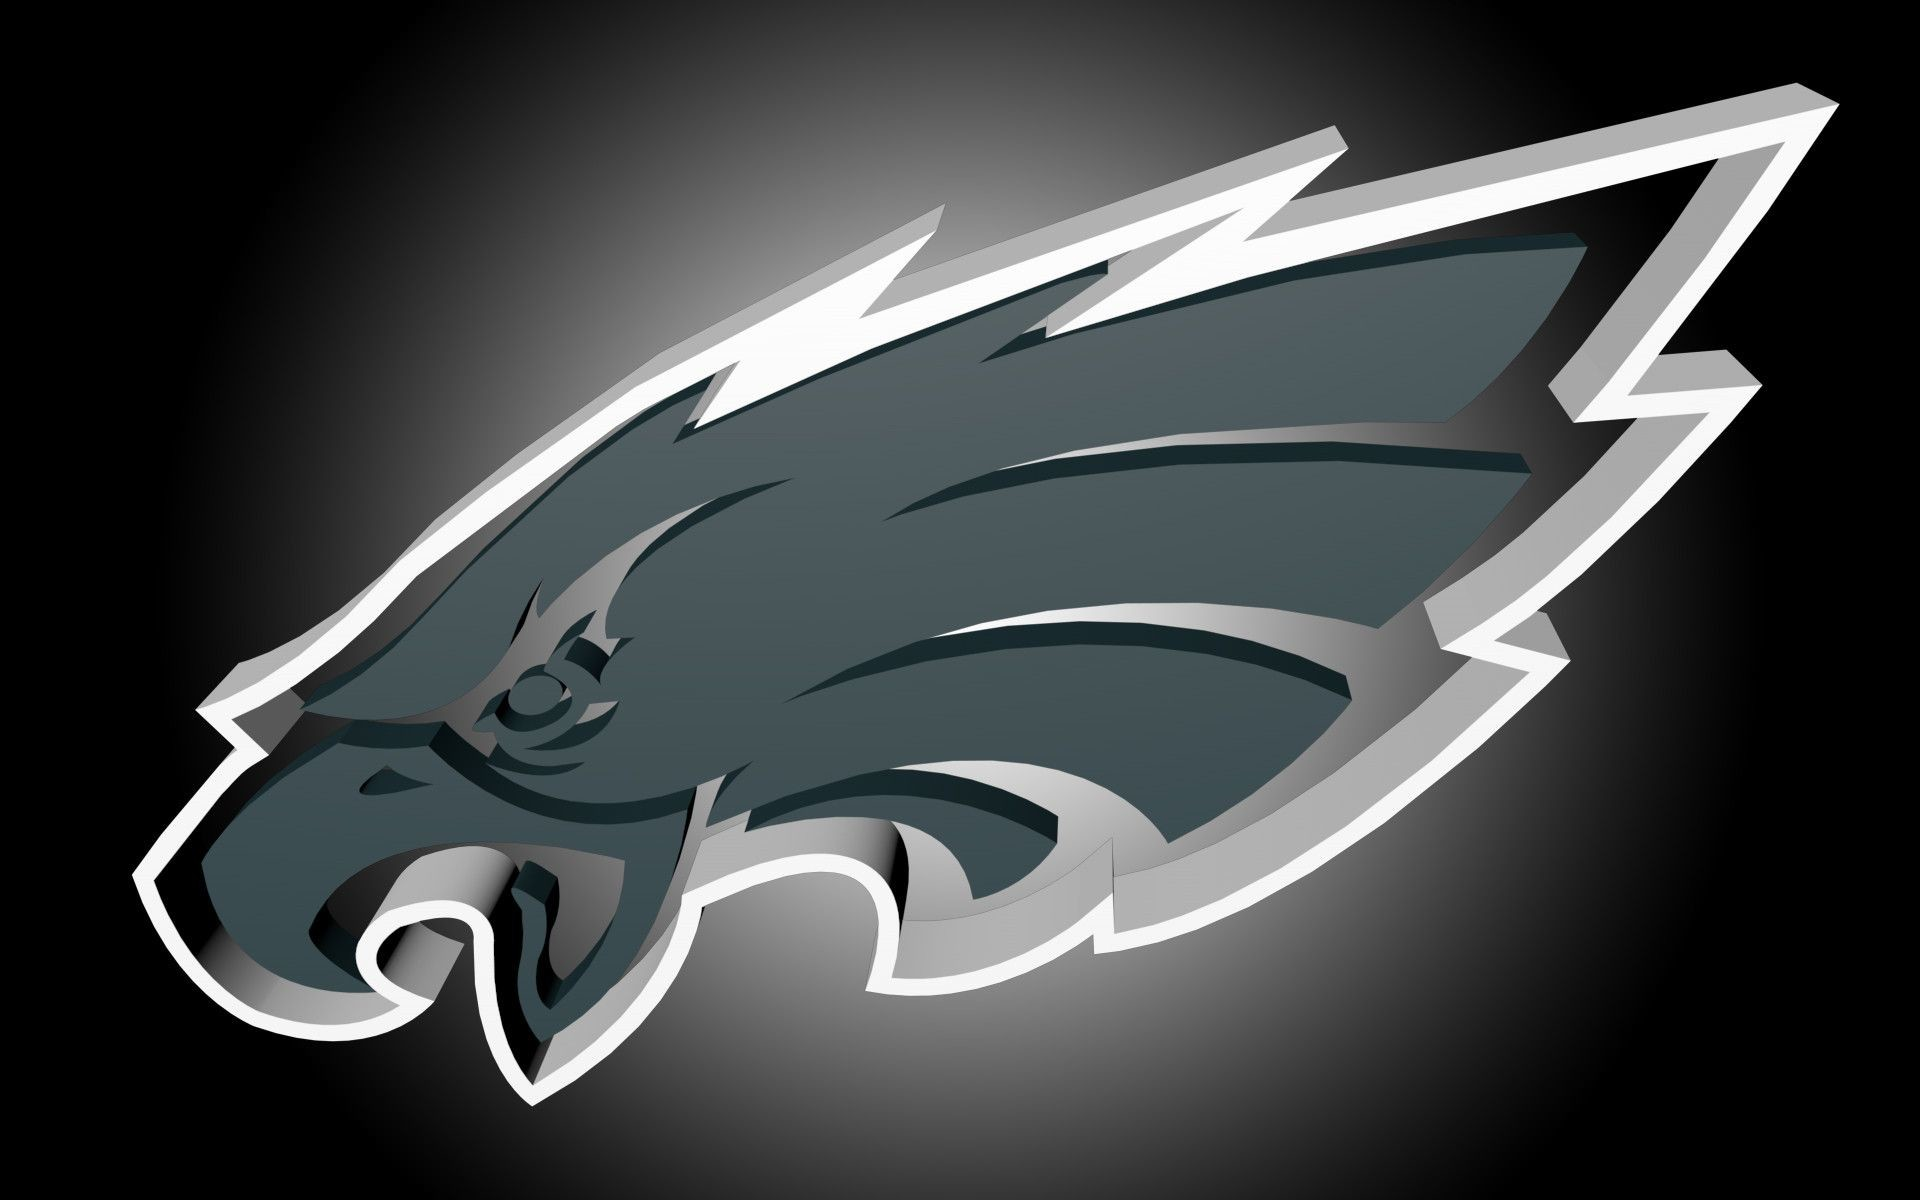 1920x1200 Philadelphia Eagles Desktop Wallpapers WPPSource 1920×1080 Philadelphia  Desktop Wallpapers (42 Wallpapers) | Adorable Wallpapers | Desktop |  Pinterest ...